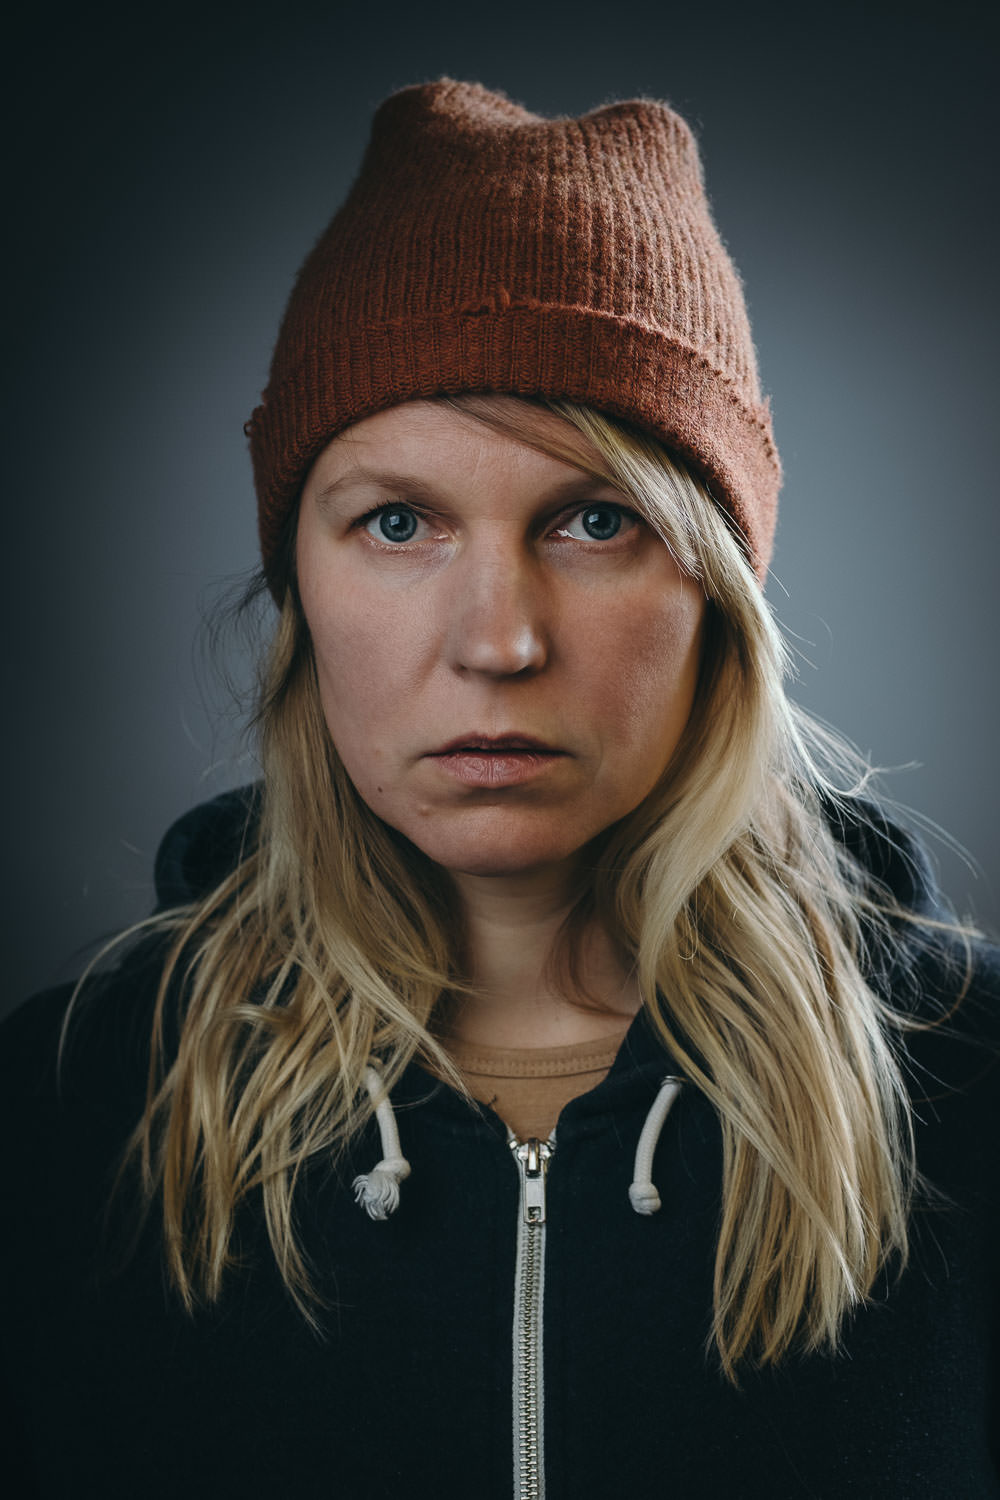 in studio headshot of a woman wearing a beanie for About Me page